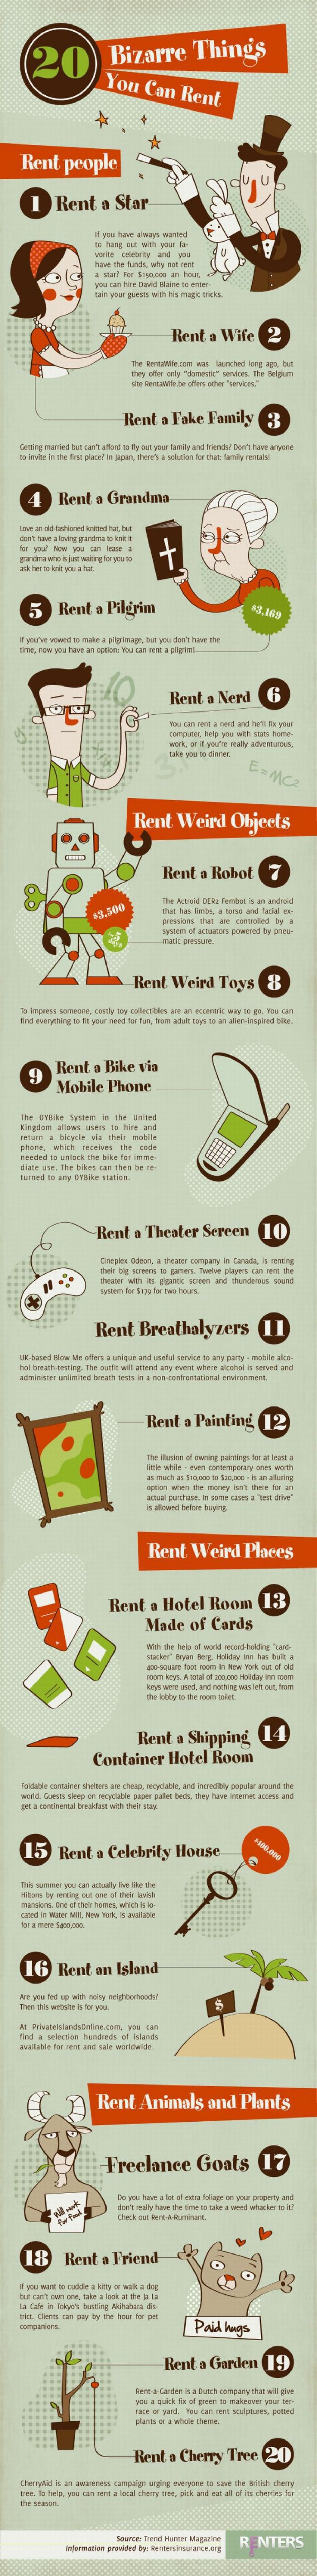 20 Bizarre Things You Can Rent Infographic